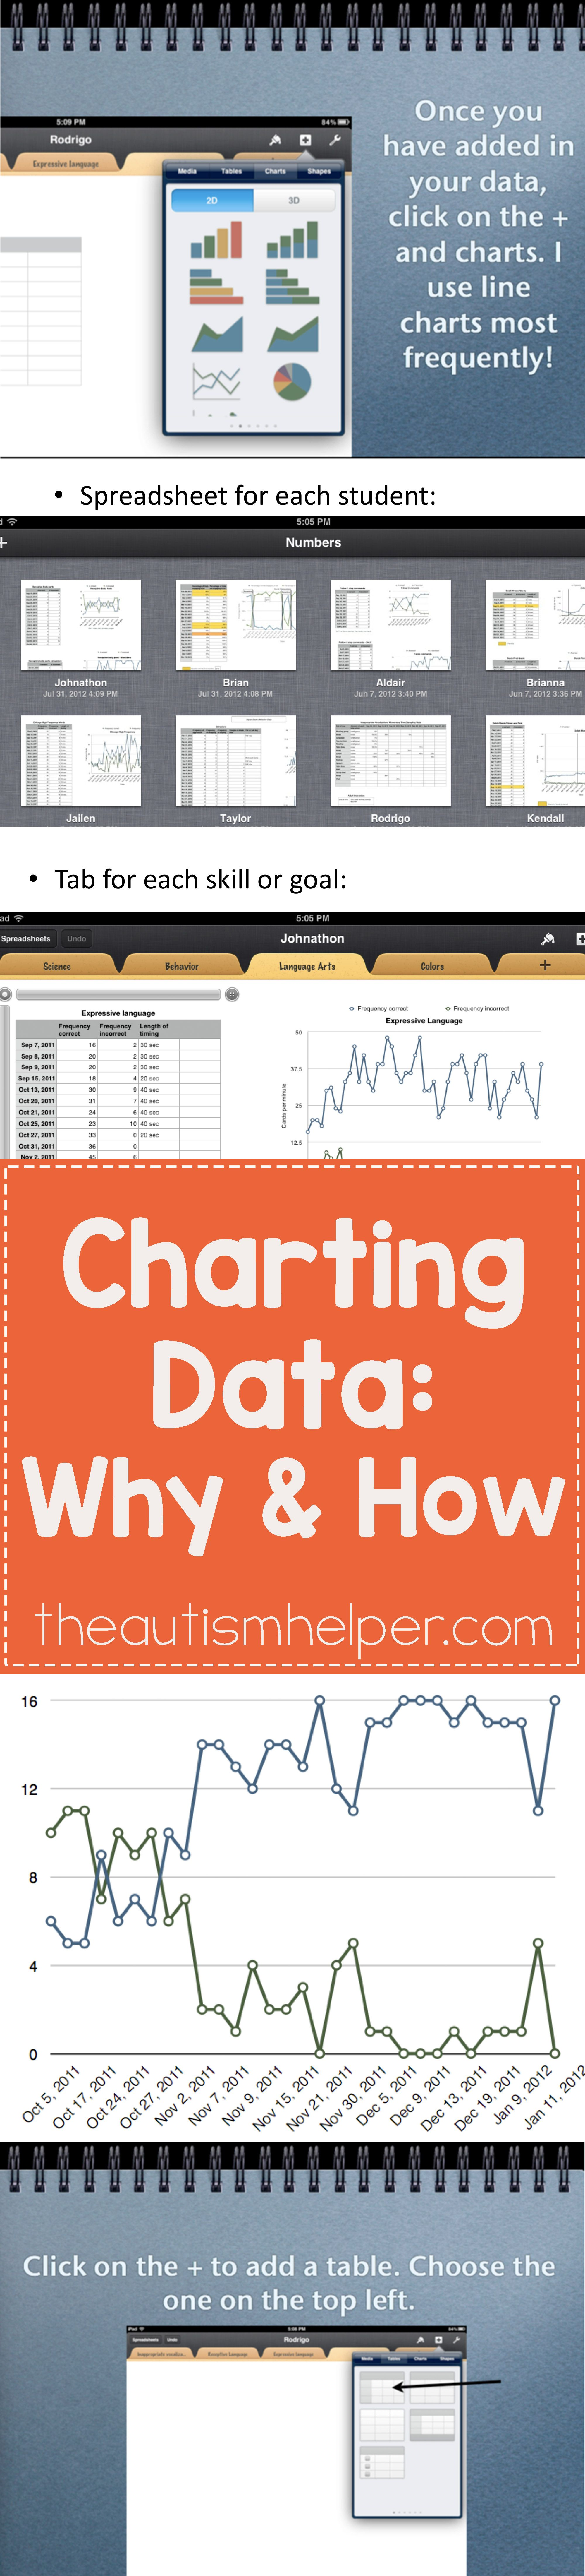 Charting Data Why Amp How